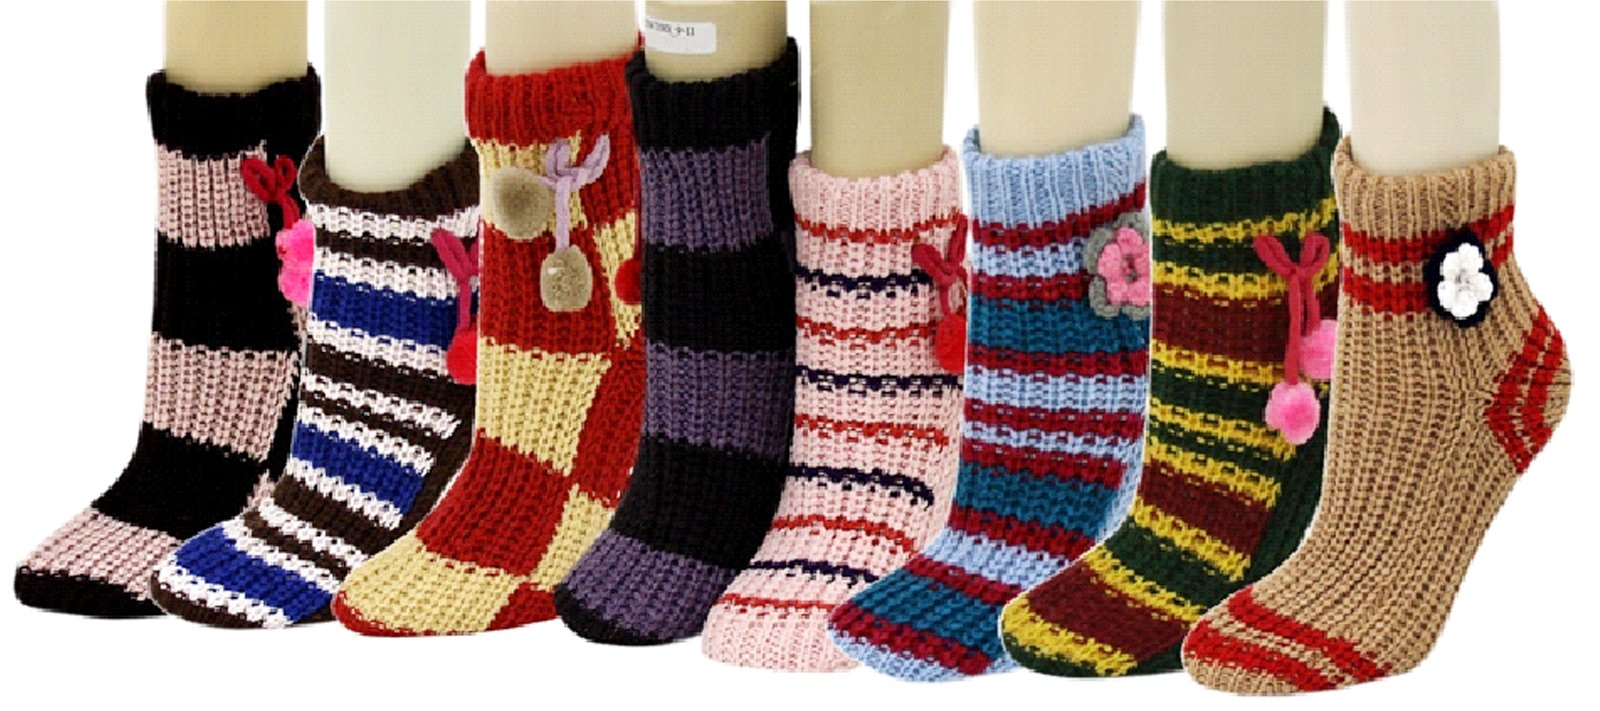 Fashion Mic's 3D Slipper Socks With Rubber Grips 6 Pairs (9-11, flowers and balls)